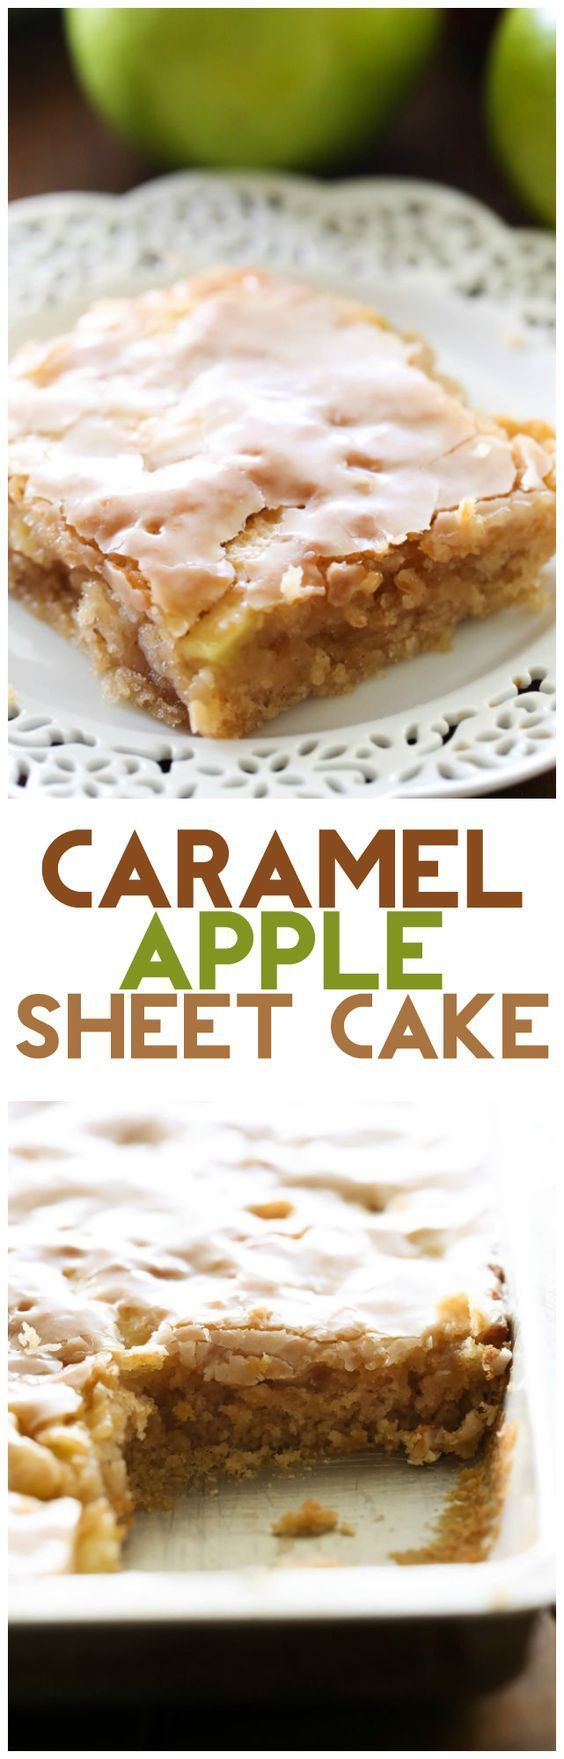 Caramel Apple Sheet Cake Recipe via Chef in Training ... this cake is perfectly moist and has caramel frosting infused in each and every bite! It is heavenly! The Best EASY Sheet Cakes Recipes - Simple and Quick Party Crowds Desserts for Holidays, Special Occasions and Family Celebrations